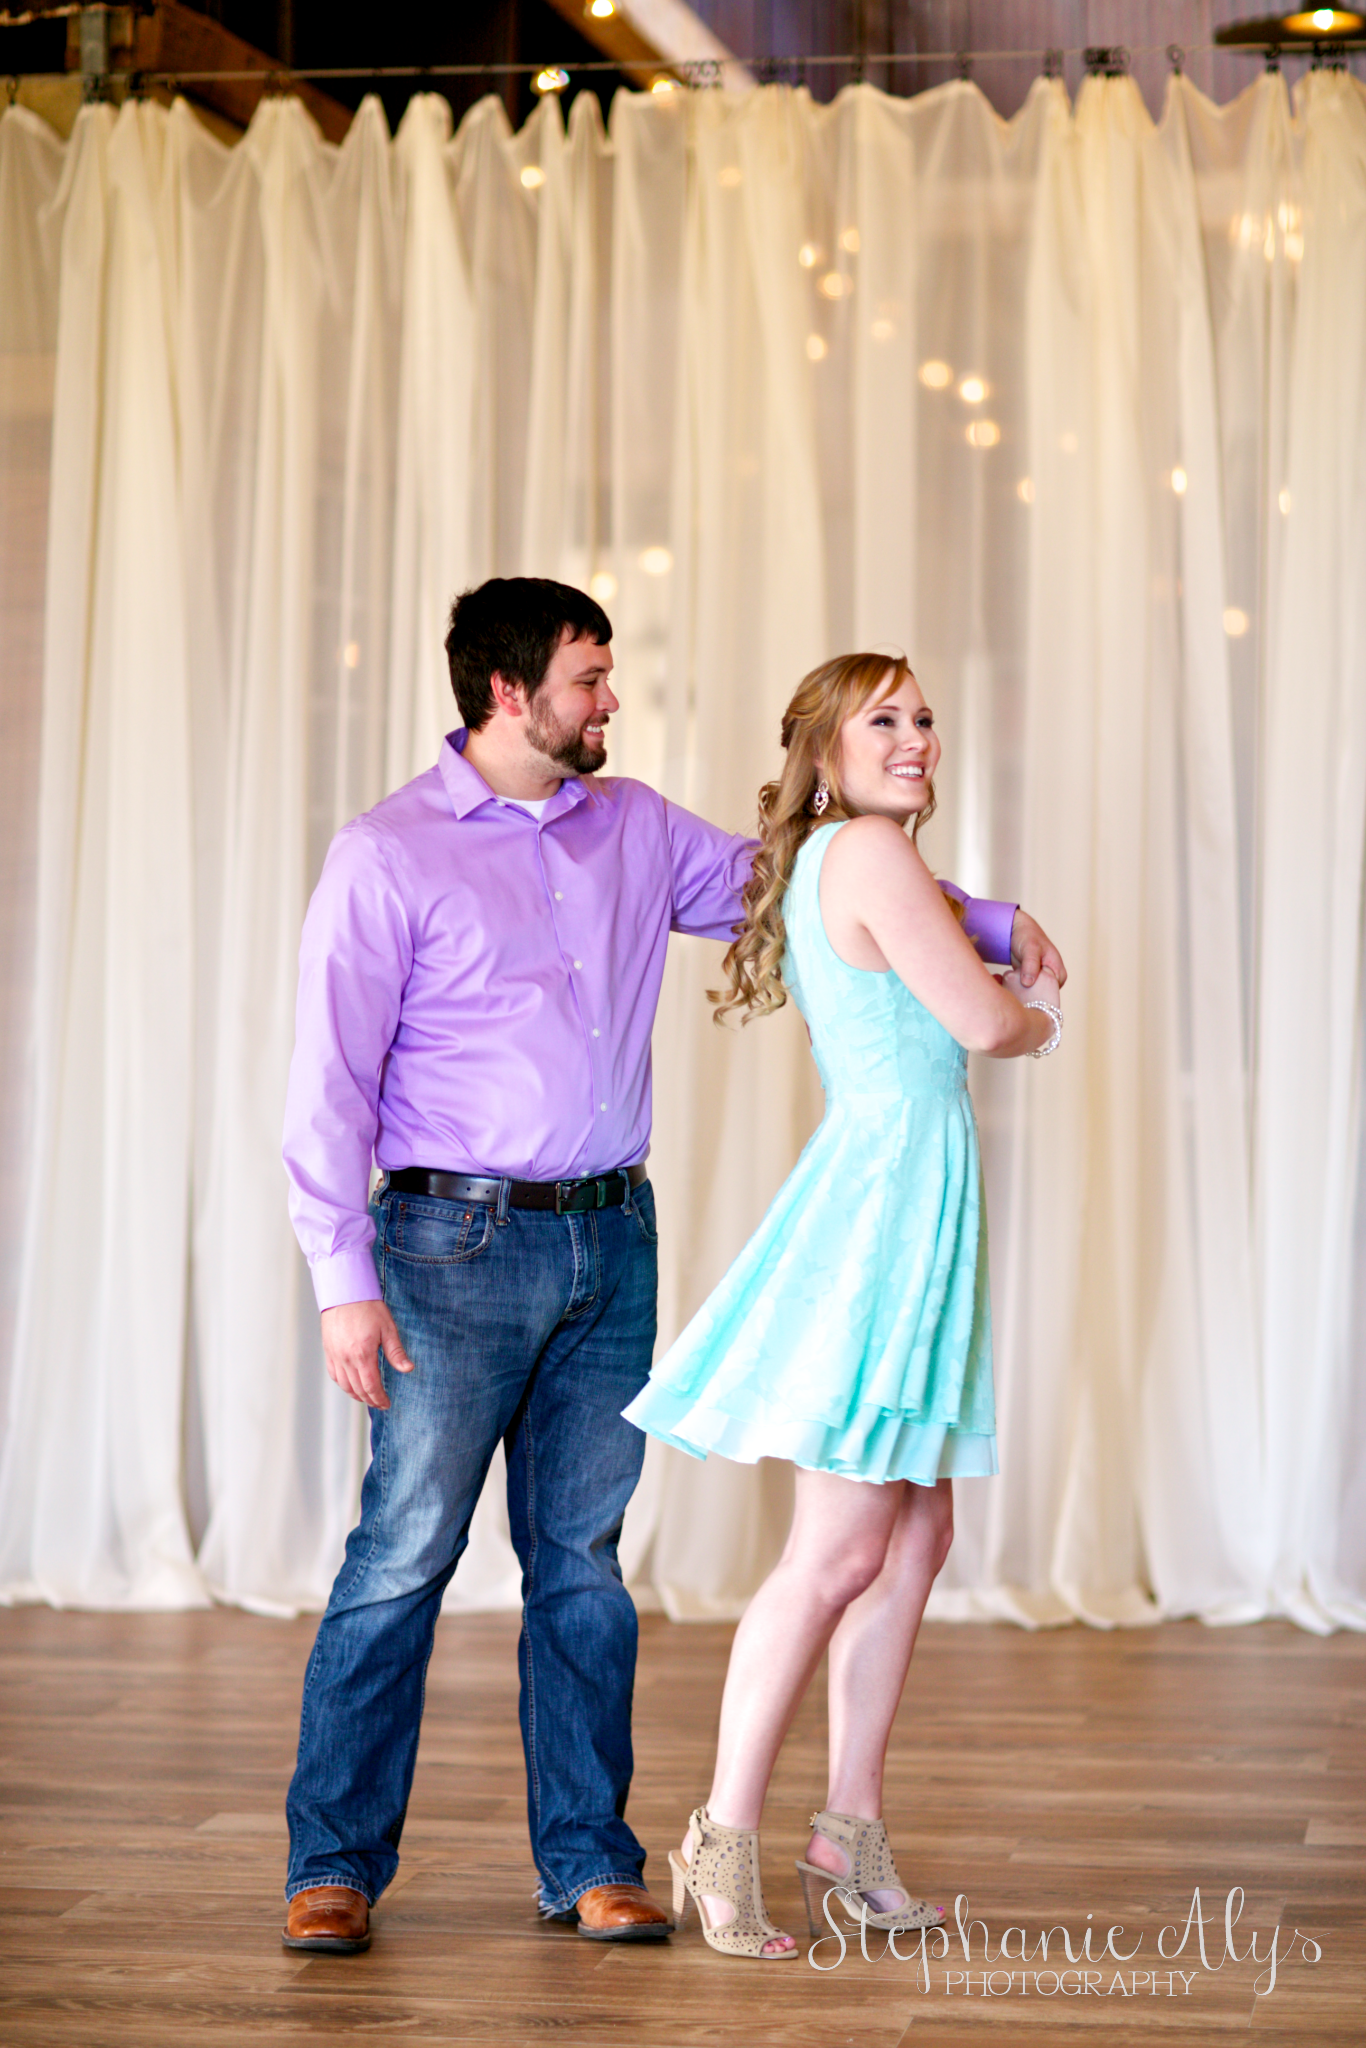 Stephanie Alys Photography   Square One Workshop   Tomball Engagement Photographer